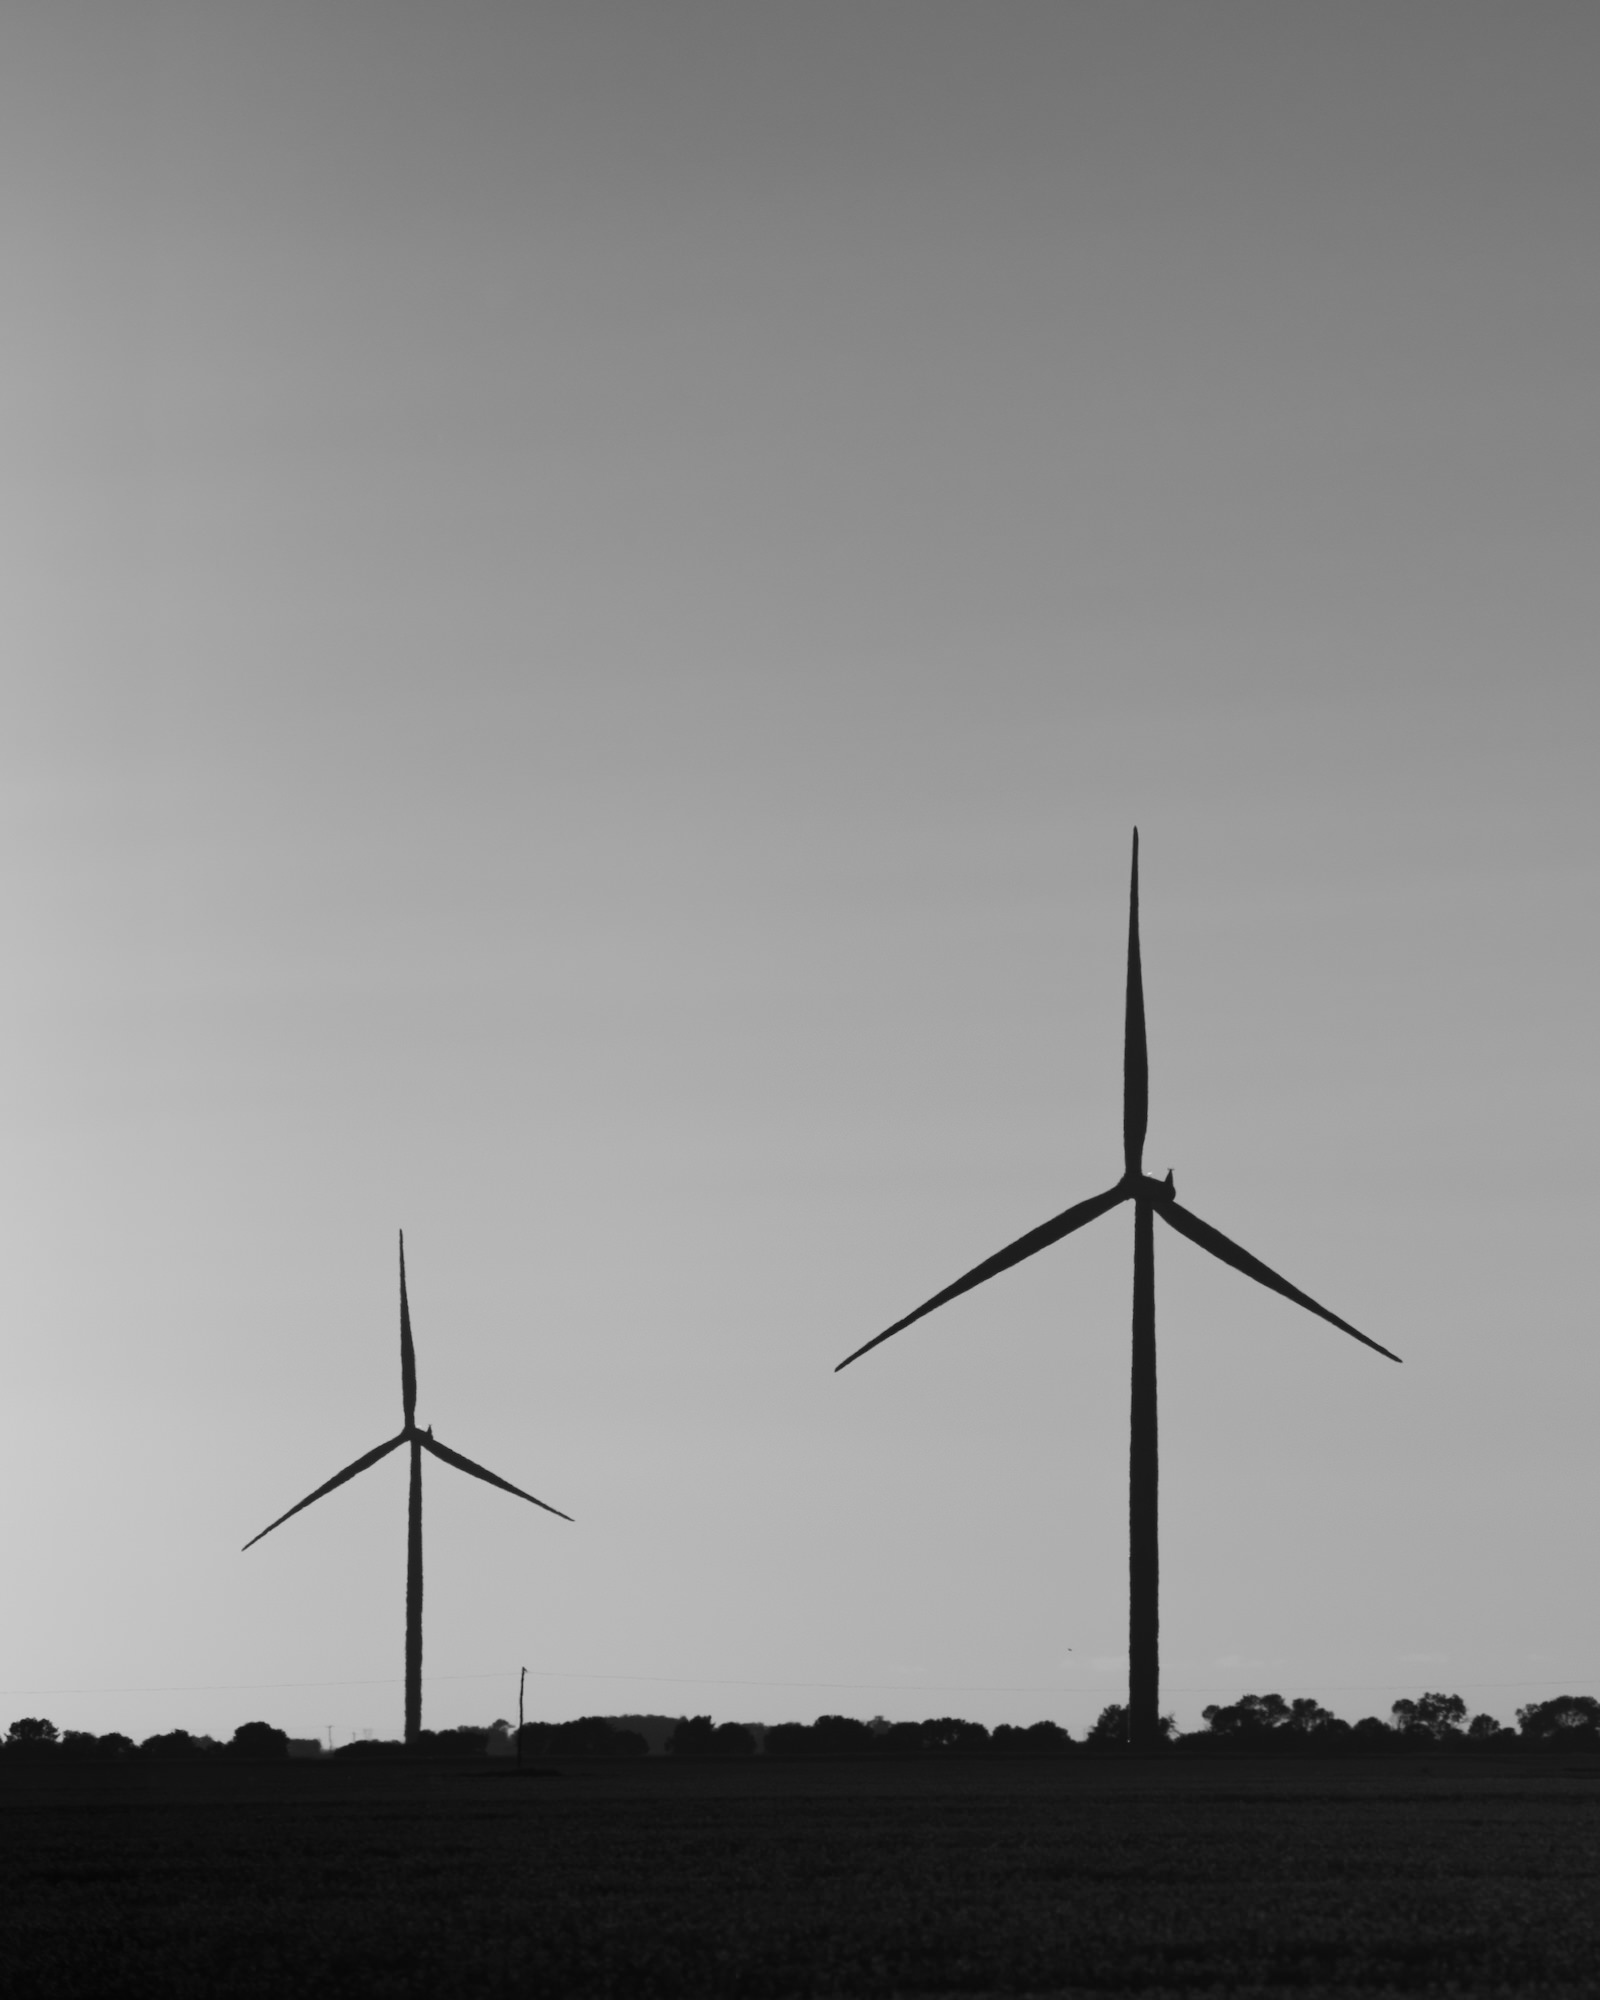 polar-visual-wind-turbines-taylor-sheppard-photography-photo-video-motion-design-graphic-emerson-stonewall-winnipeg-manitoba-landcape-nature.jpg